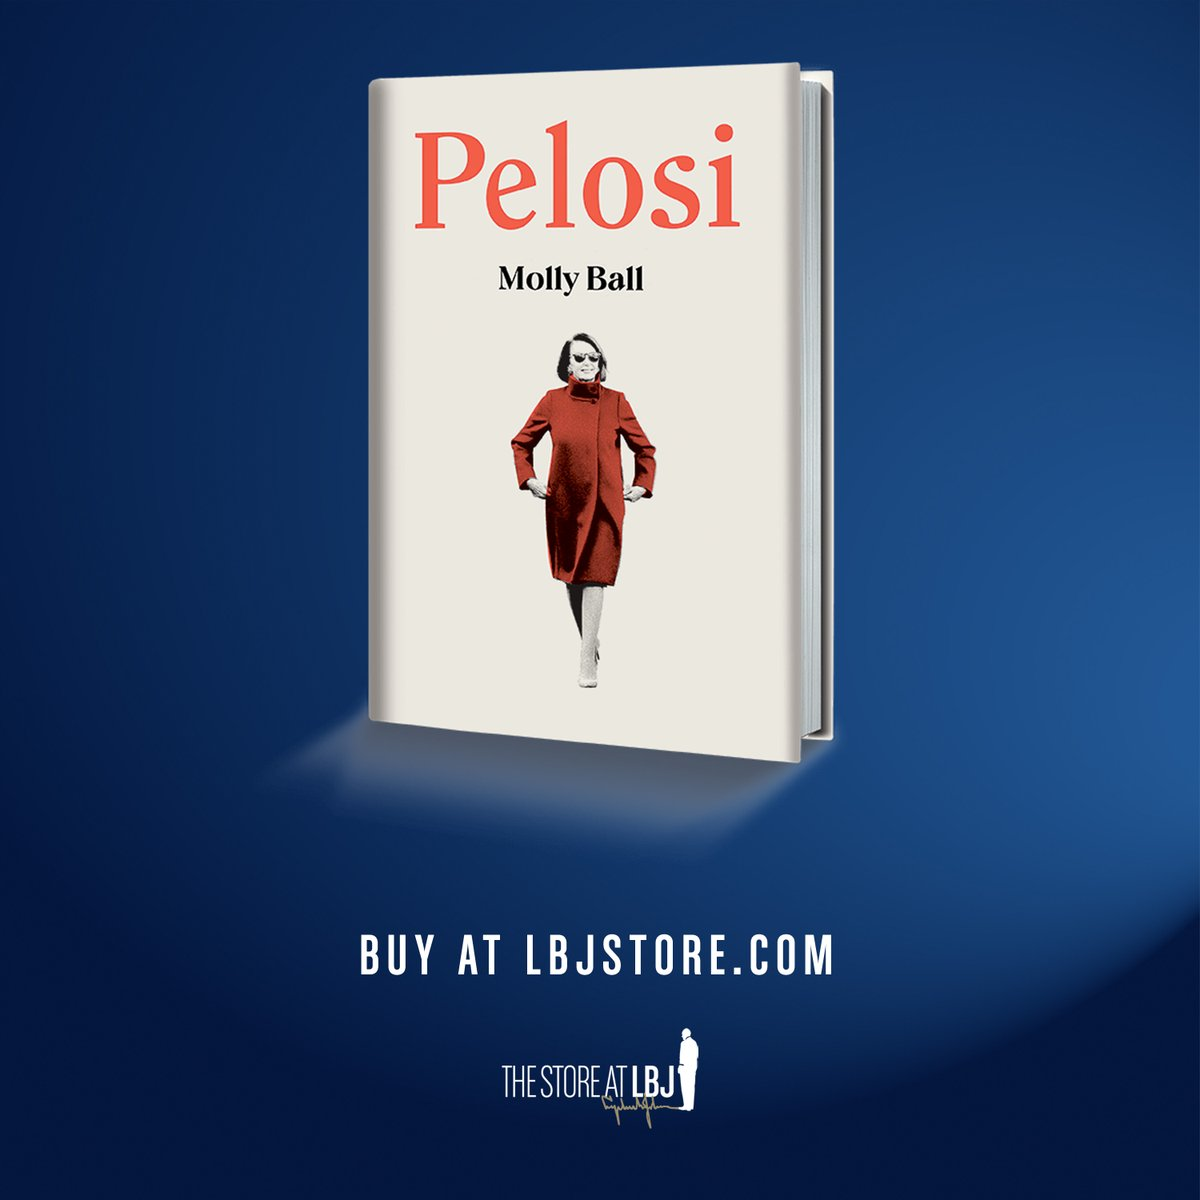 "📖 Pick up a signed copy of @mollyesque's ""Pelosi"" in the #LBJstore!  As @Kaibird123 said: ""This sparkling new take on Pelosi makes us understand how this 'San Francisco liberal'...has become America's most consequential legislator since the days of LBJ.""  https://t.co/ImP9pviGqj https://t.co/Sq4VQpKZII"